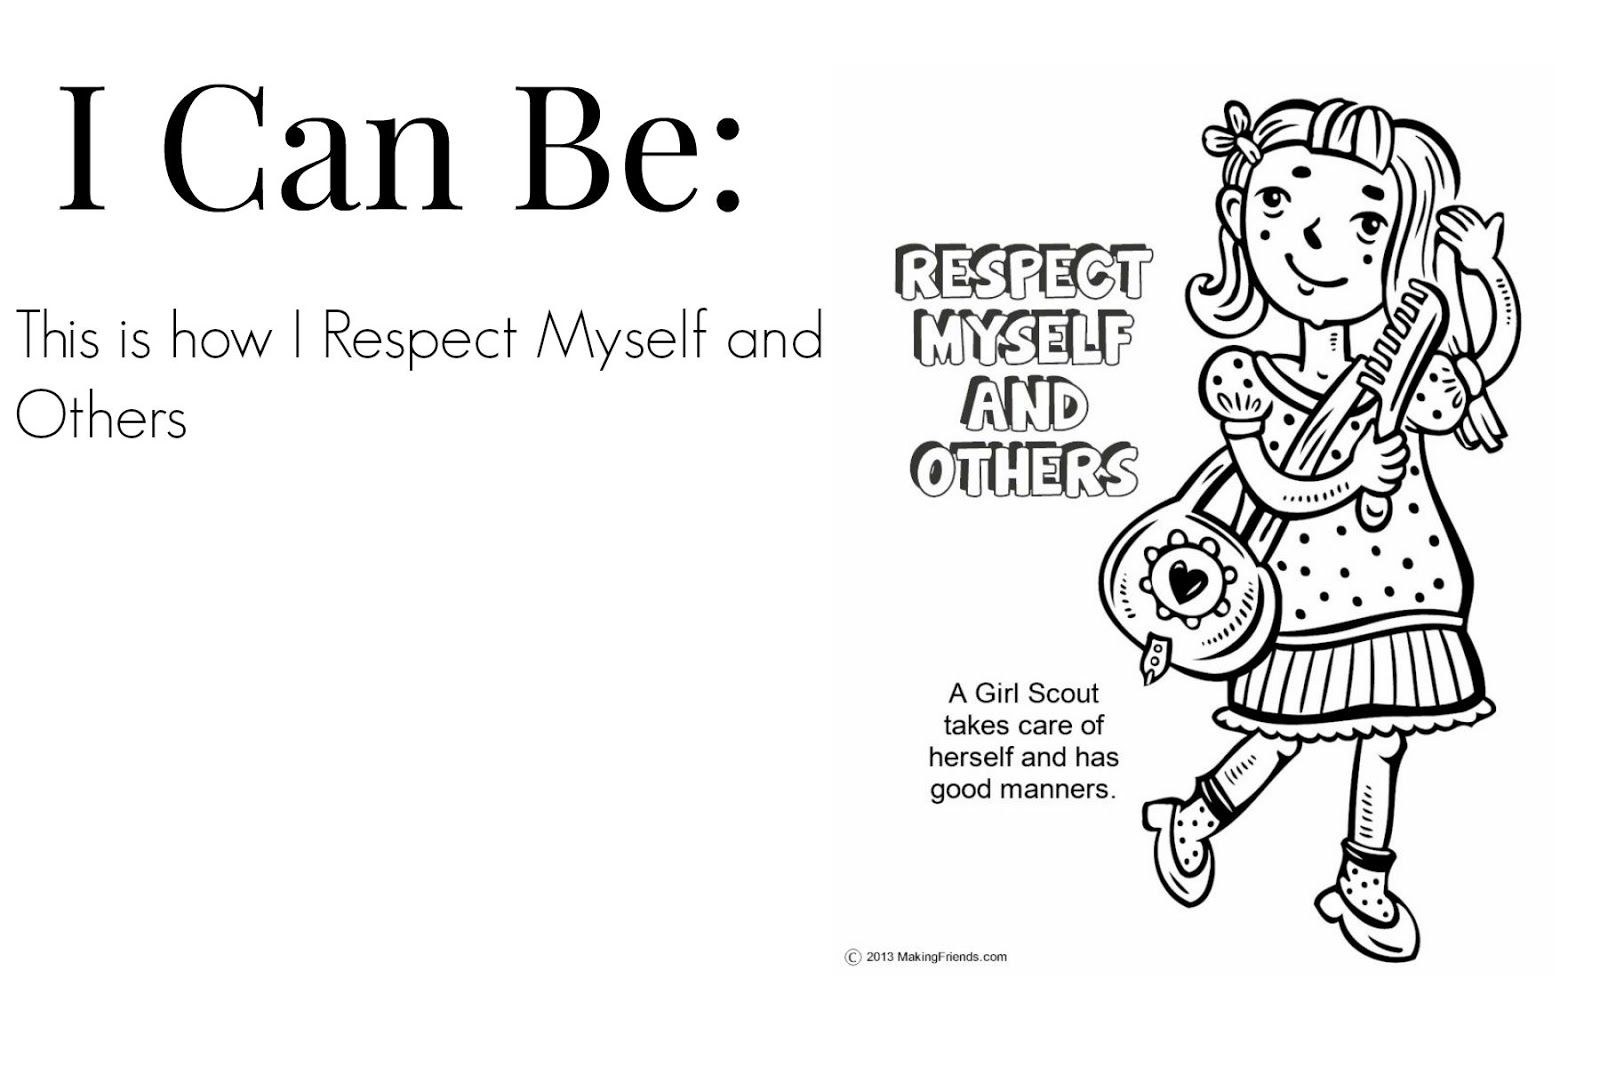 Free coloring pages for girl scouts - Coloring Page Respect Myself And Others High Quality Coloring Pages